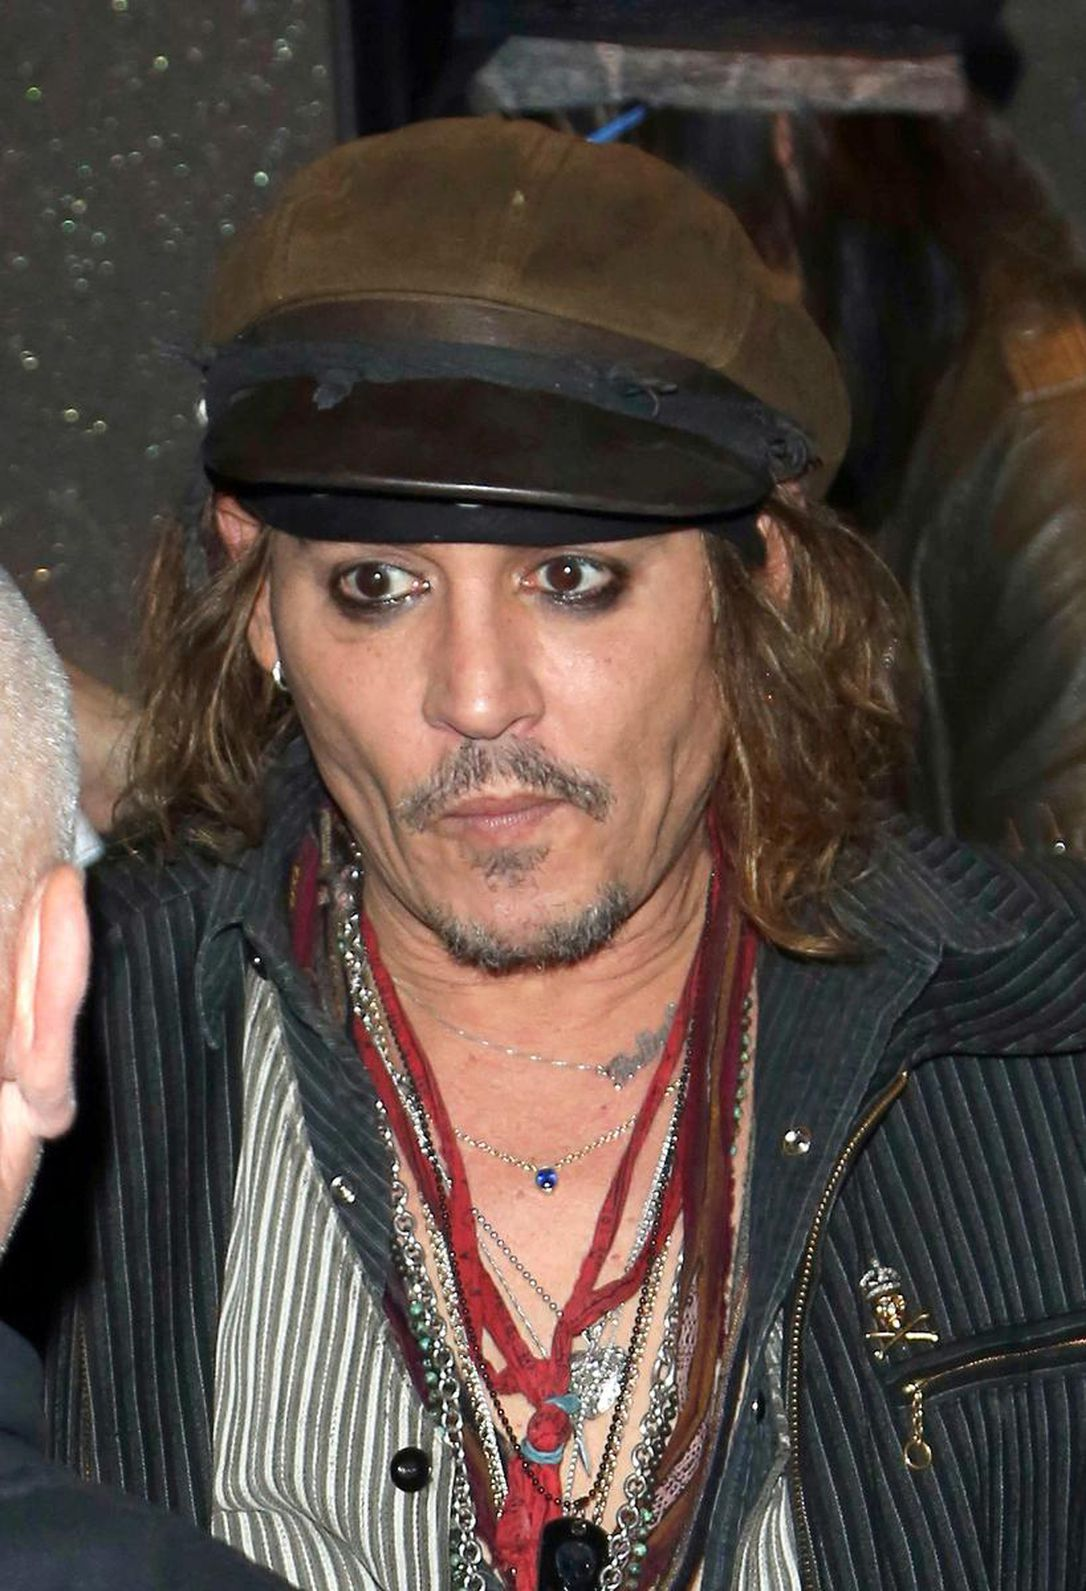 Johnny Depp wearing a cap and accessories